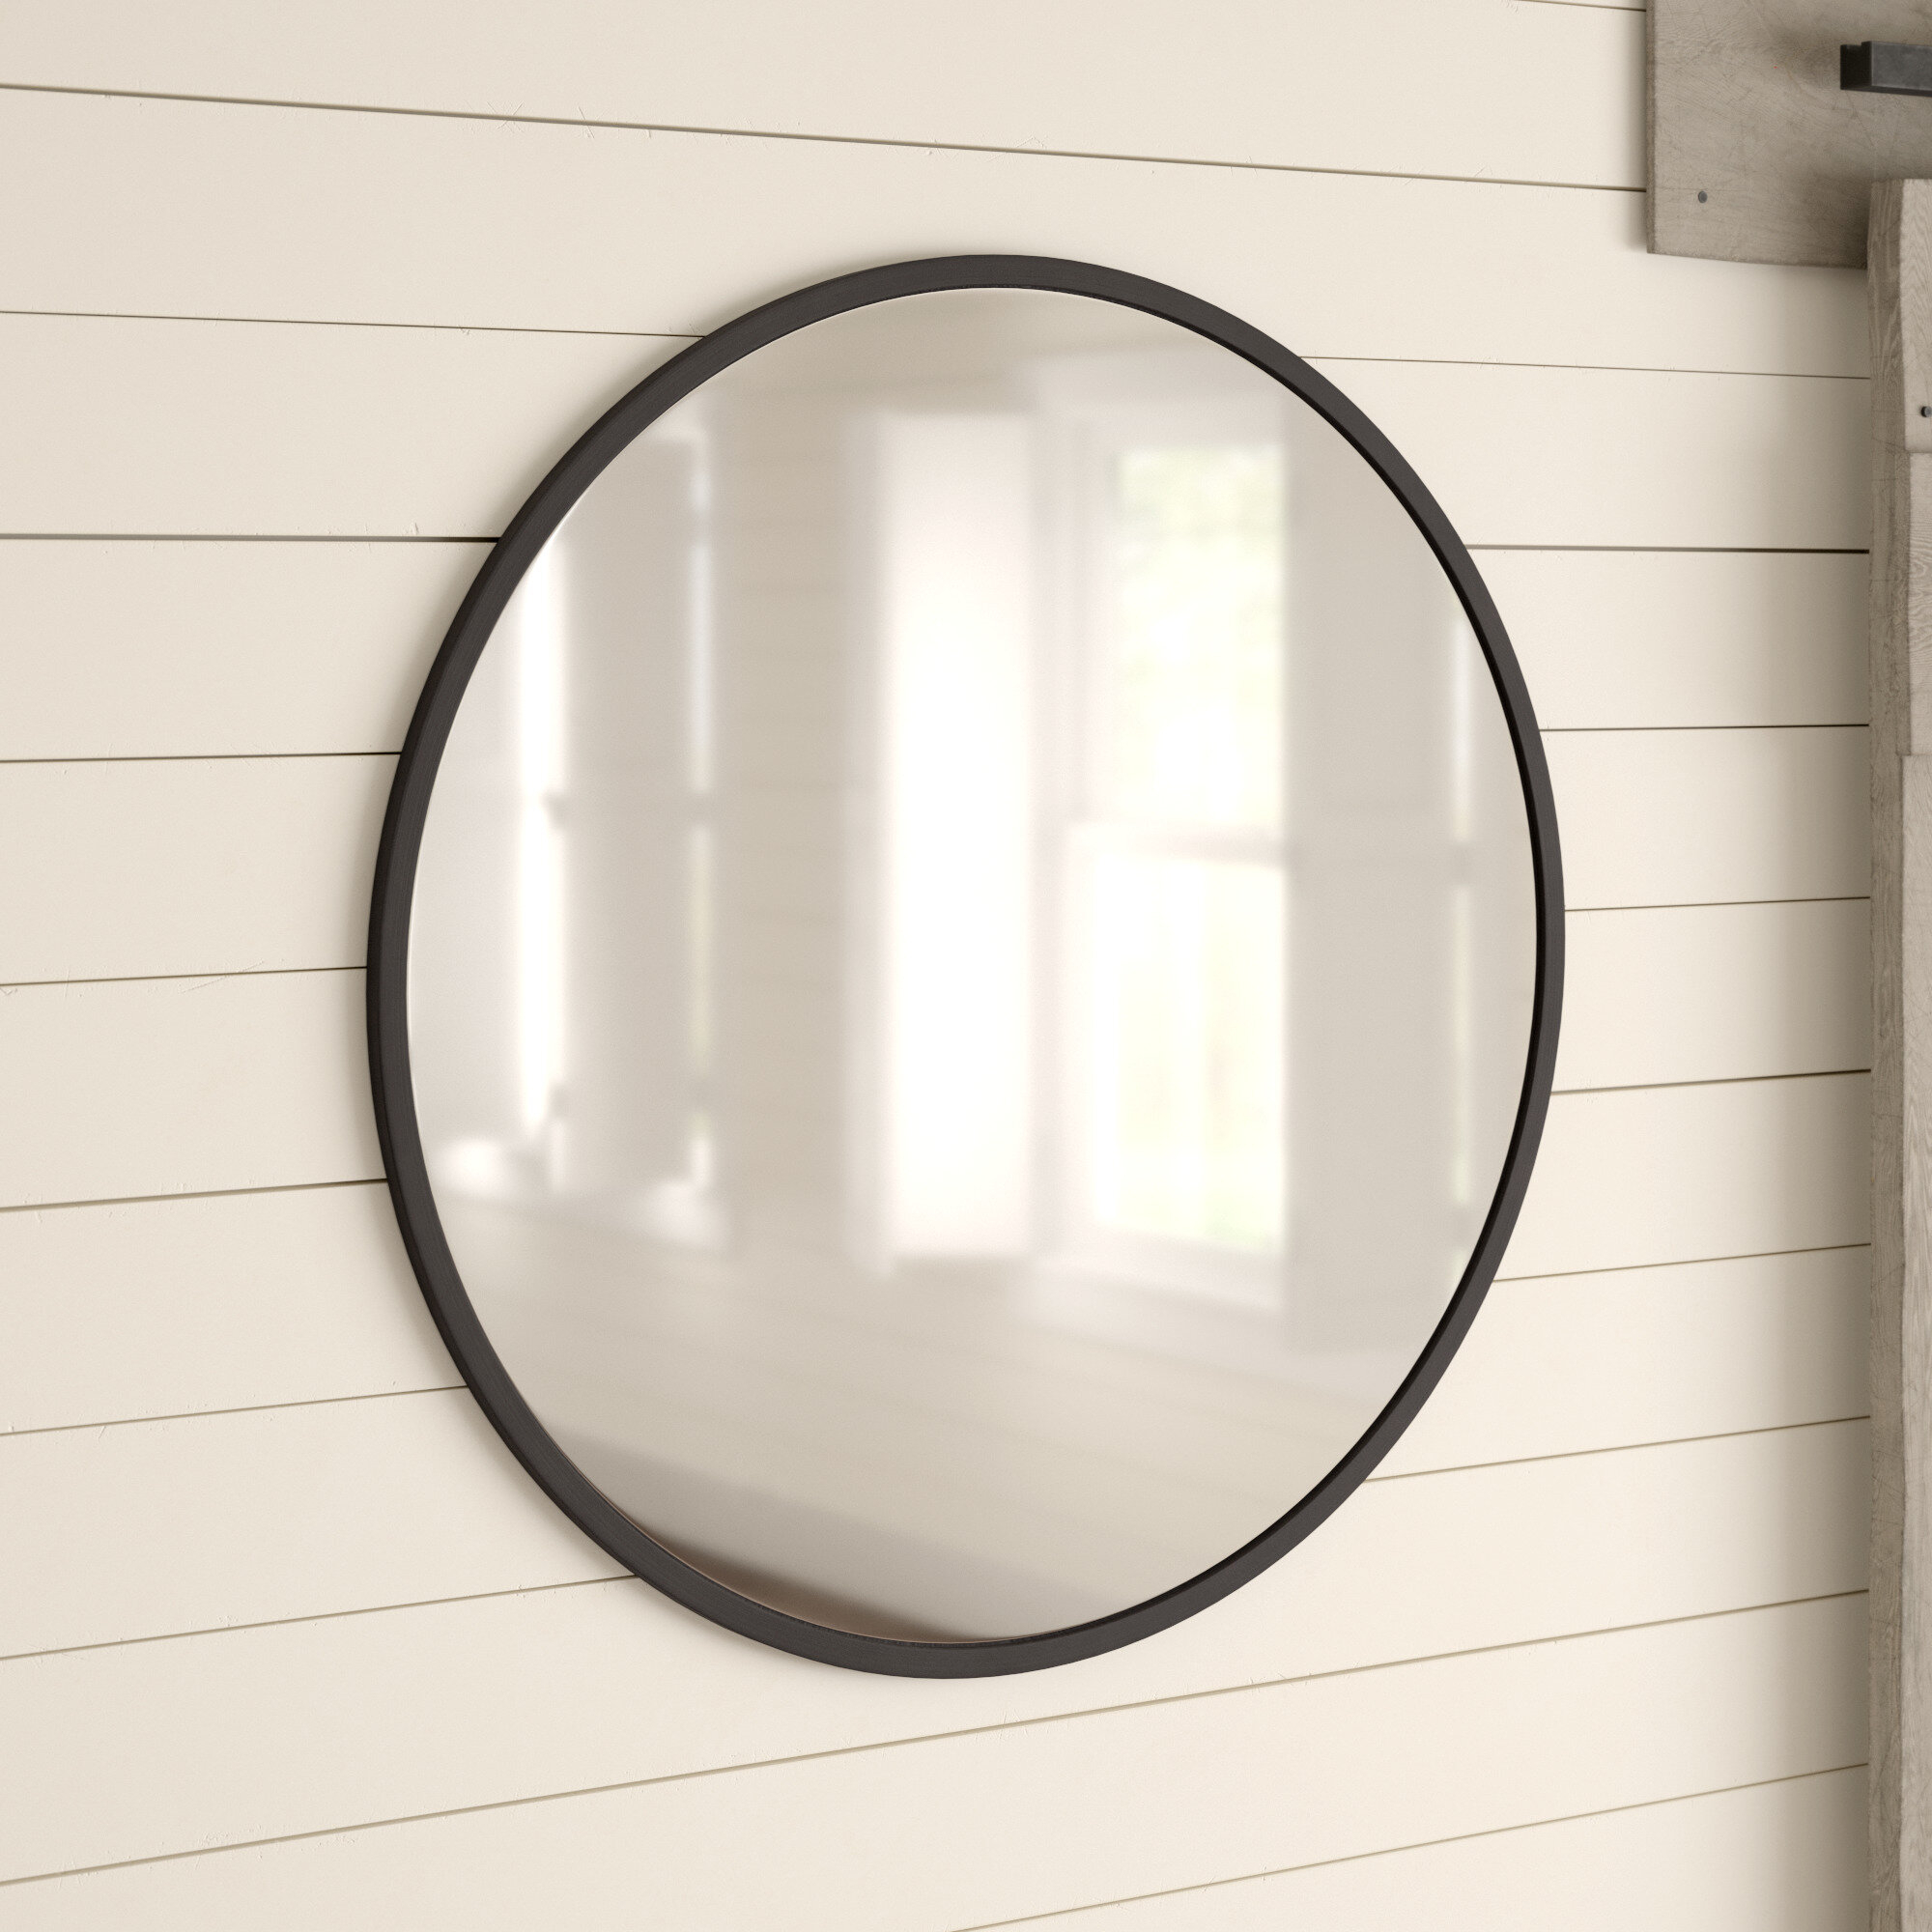 Umbra Hub Modern And Contemporary Accent Mirror Throughout Menachem Modern & Contemporary Accent Mirrors (View 12 of 20)